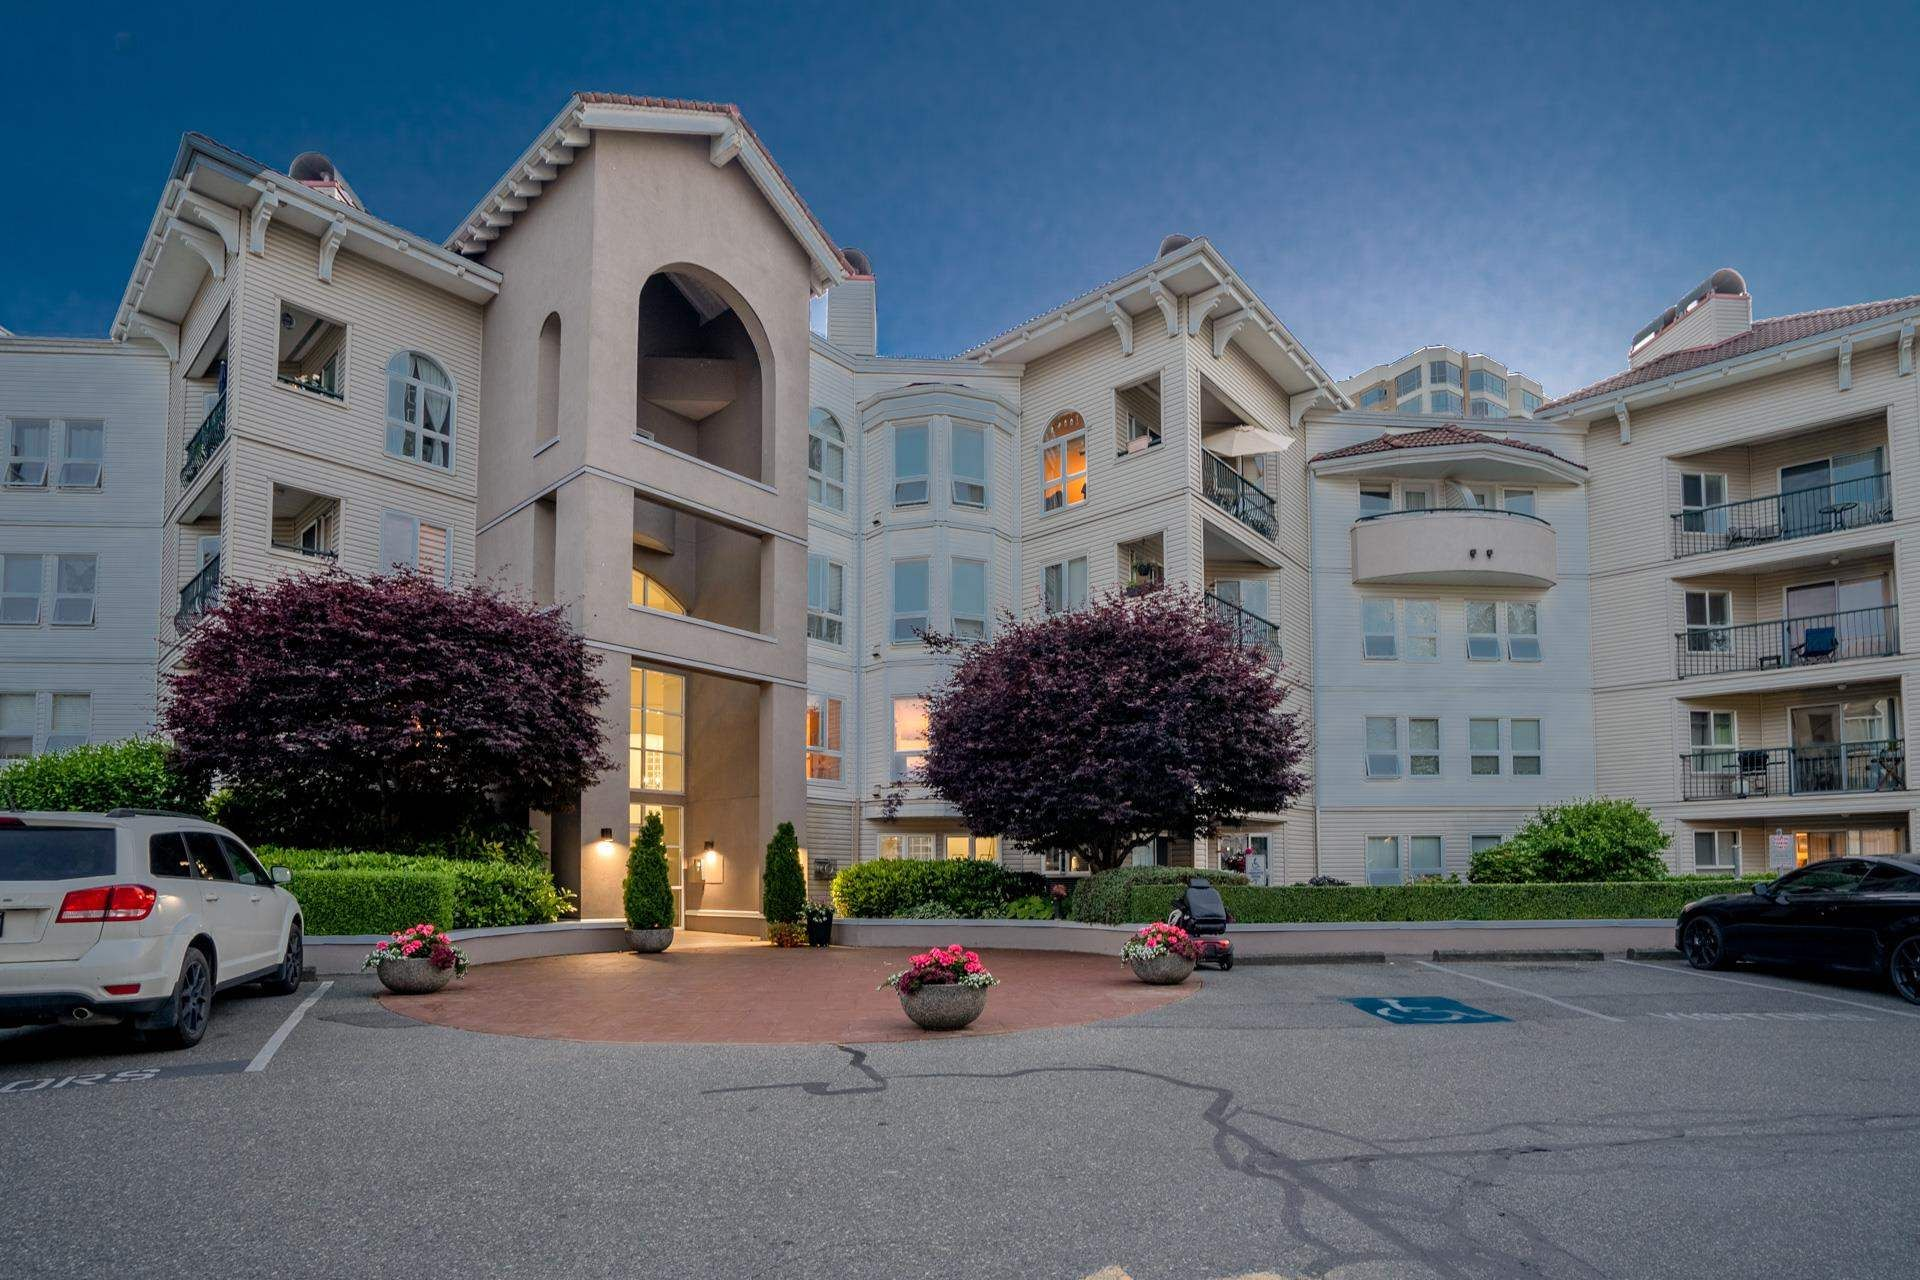 """Main Photo: 102 3172 GLADWIN Road in Abbotsford: Central Abbotsford Condo for sale in """"Regency Park"""" : MLS®# R2595337"""